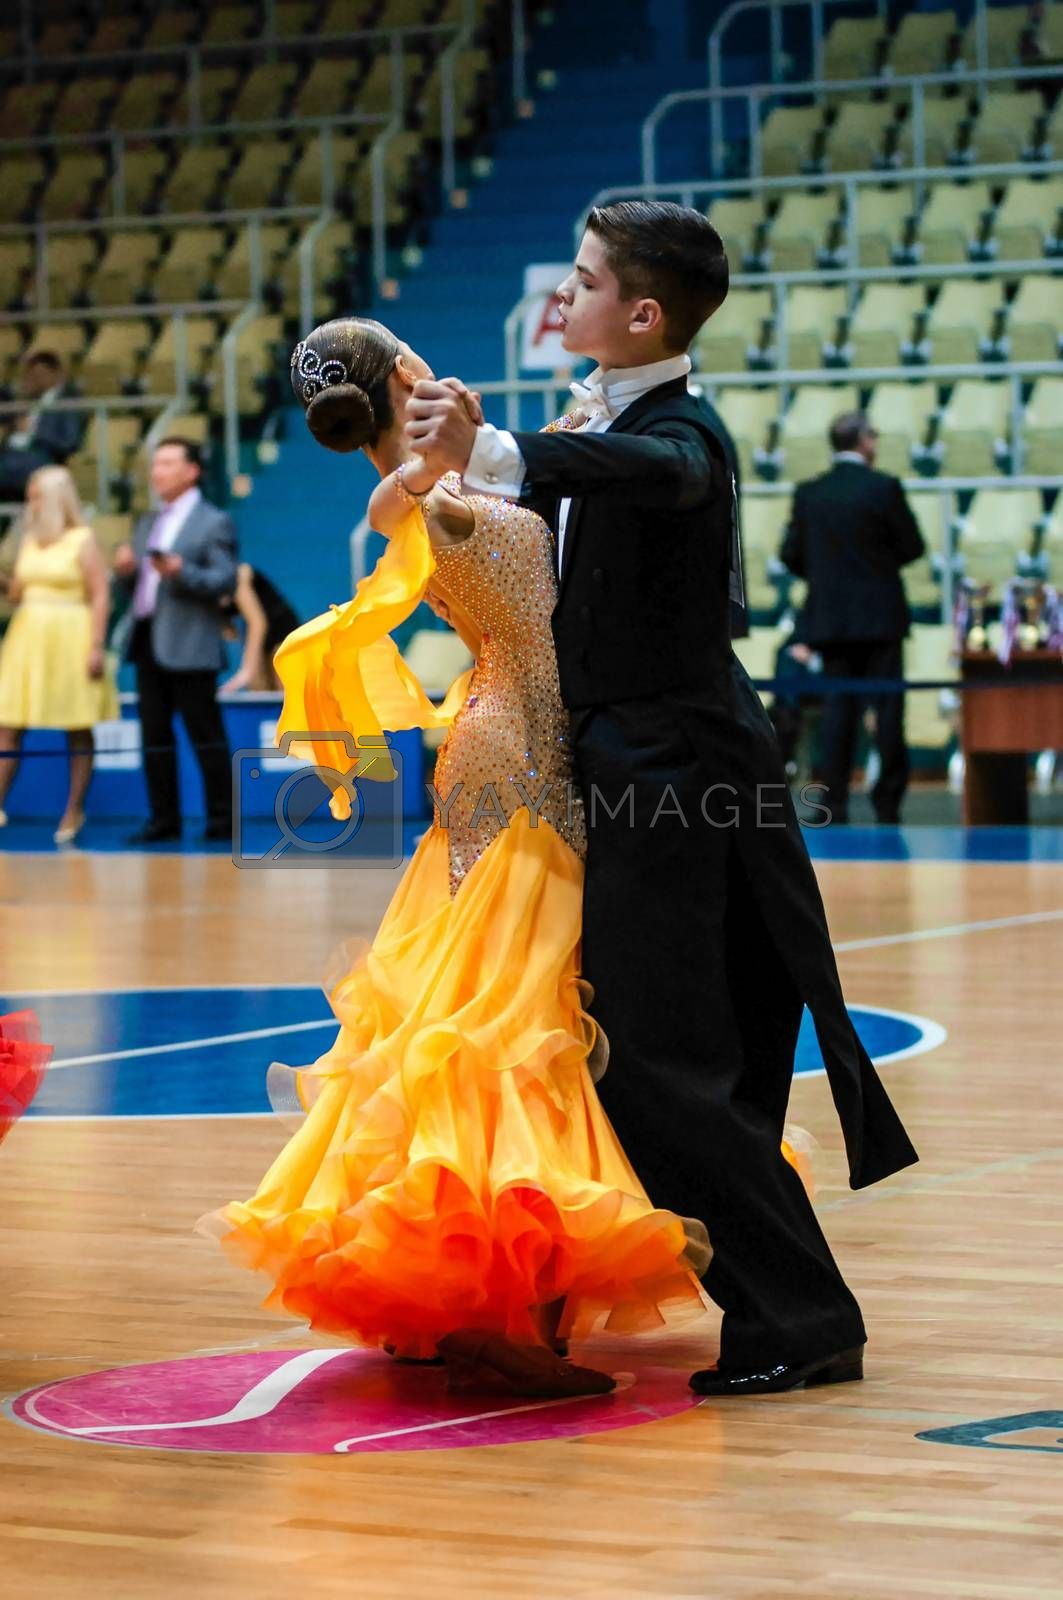 Orenburg, Russia - 24 May 2015: Girl and boy dancing on City Championship of in sports dancing